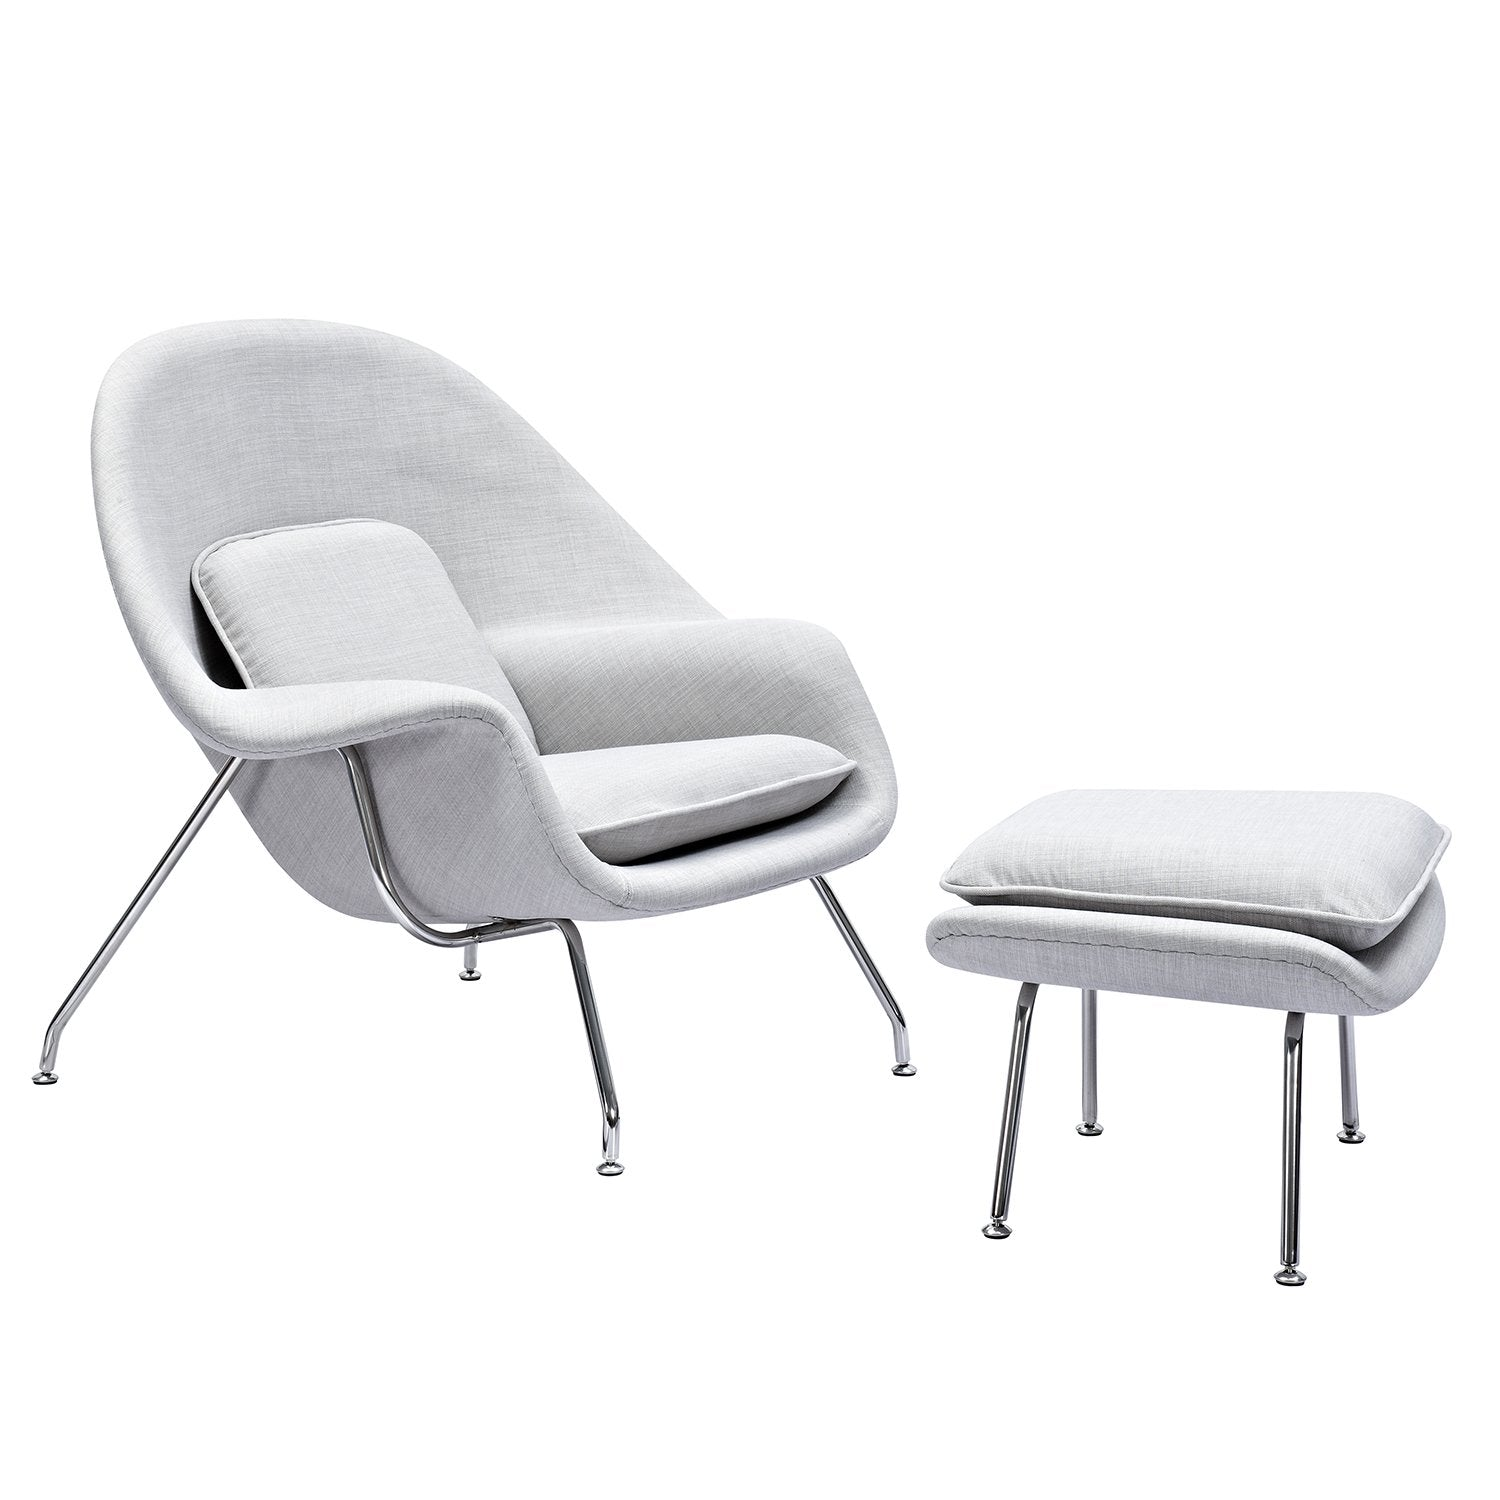 Saro Midcentury Modern Chair And Ottoman In Glacier White Fabric On  Stainless Steel Legs Accent ...